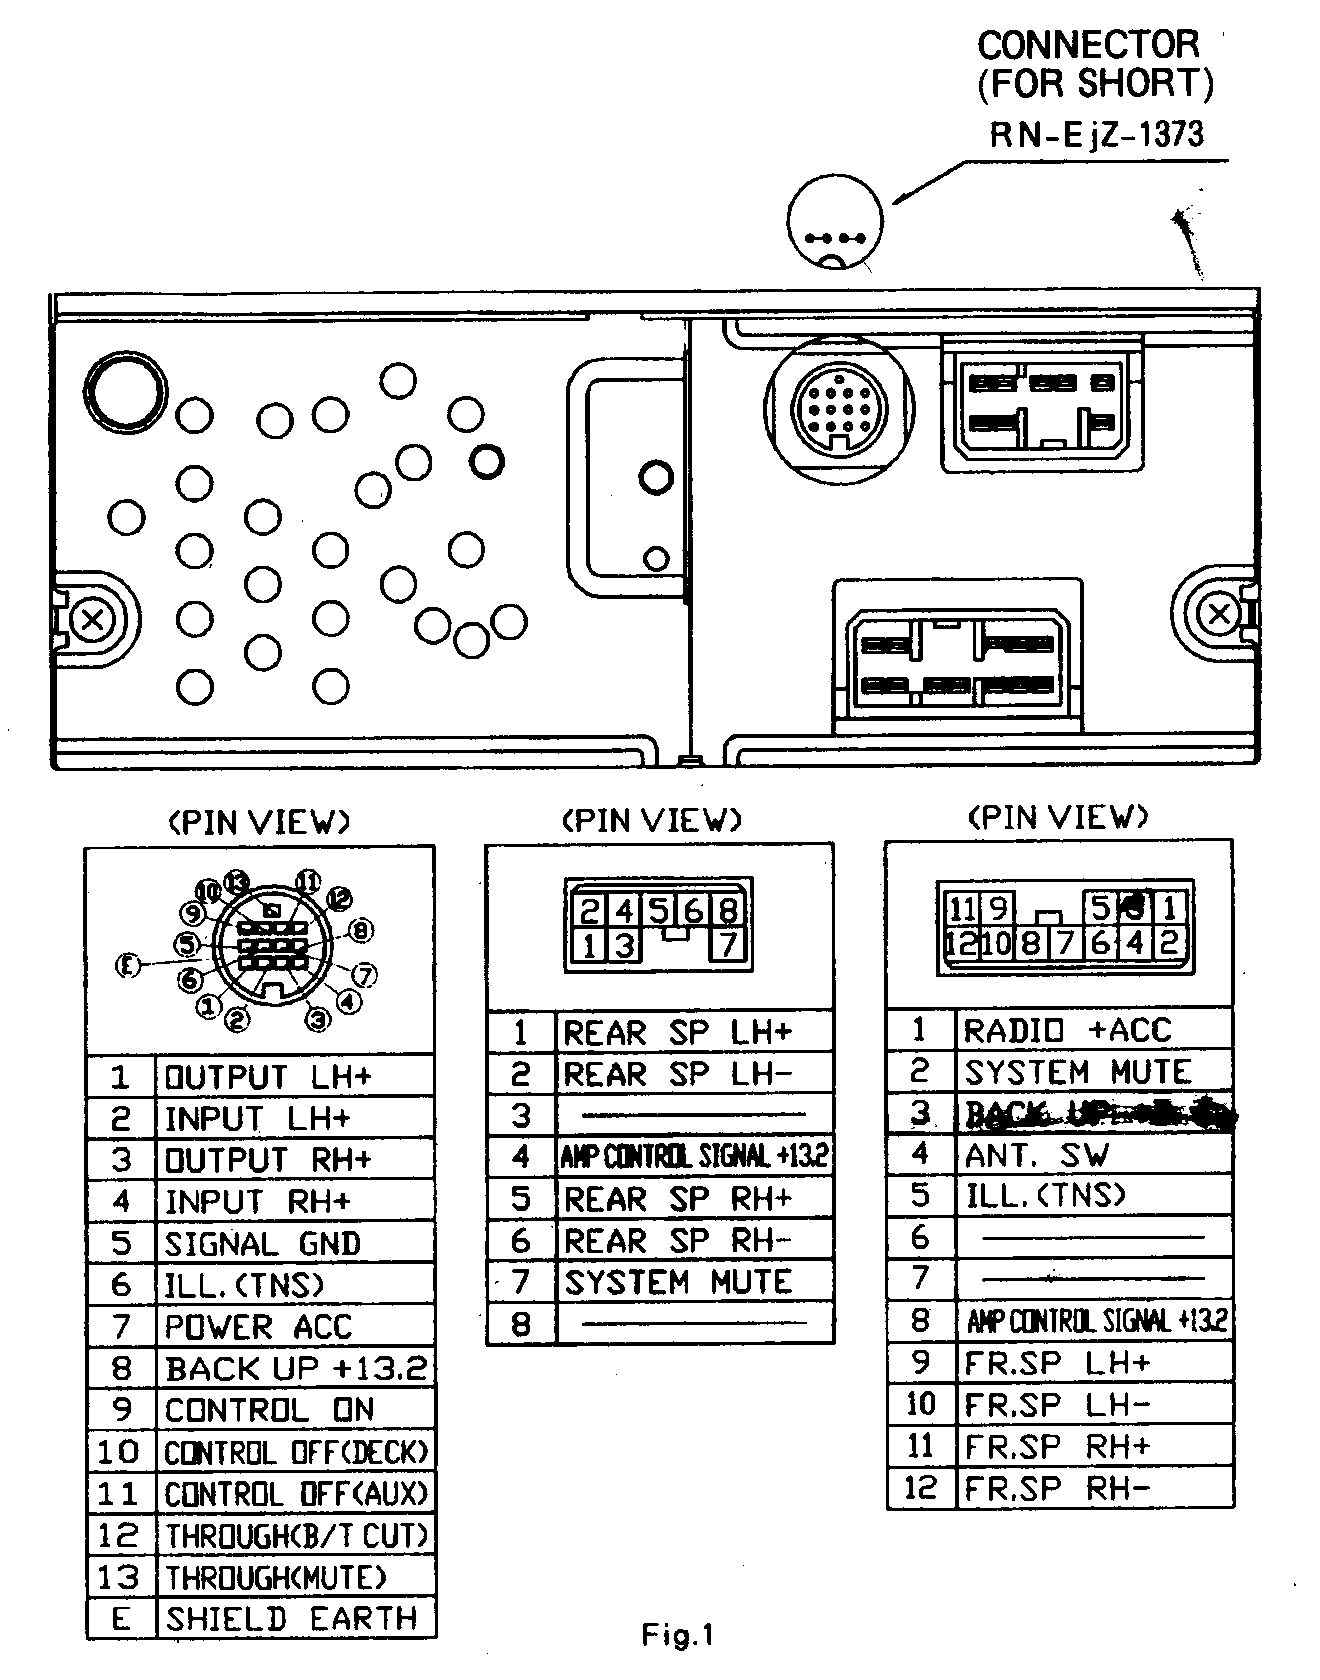 MAZDA Car Radio Wiring Connector on 2001 Mazda 626 Radio Wiring Diagram